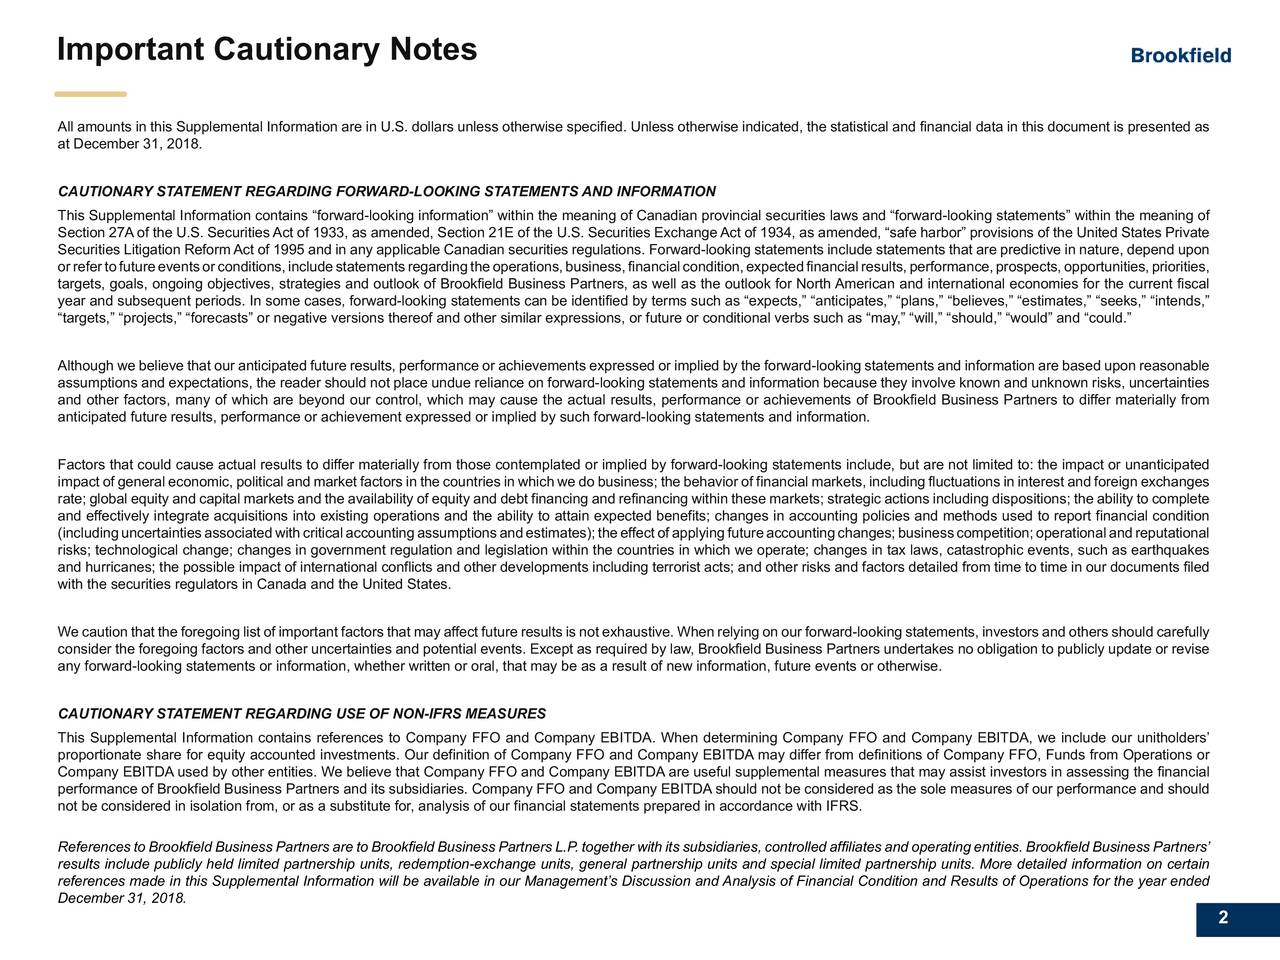 "Print R34 G34 B35 Important Cautionary Notes On-screen R17 G17 B17 All amounts in this Supplemental Information are in U.S. dollars unless otherwise specified. Unless otherwise indicated, the statistical and financial data in this document is presented as at December 31, 2018. Logo & Divider Slide Font CAUTIONARY STATEMENT REGARDING FORWARD-LOOKING STATEMENTS AND INFORMATION R0 G48 B87 This Supplemental Information contains ""forward-looking information"" within the meaning of Canadian provincial securities laws and ""forward-looking statements"" within the meaning of Section 27A of the U.S. Securities Act of 1933, as amended, Section 21E of the U.S. Securities Exchange Act of 1934, as amended, ""safe harbor"" provisions of the United States Private Sub-headers & Emphasis Securities Litigation ReformAct of 1995 and in any applicable Canadian securities regulations. Forward-looking statements include statements that are predictive in nature, depend upon Text orrefertofutureeventsorconditions,includestatementsregardingtheoperations,business,financialcondition,expectedfinancialresults,performance,prospects,opportunities,priorities, targets, goals, ongoing objectives, strategies and outlook of Brookfield Business Partners, as well as the outlook for North American and international economies for the current fiscal R64 G126 B182 year and subsequent periods. In some cases, forward-looking statements can be identified by terms such as ""expects,"" ""anticipates,"" ""plans,"" ""believes,"" ""estimates,"" ""seeks,"" ""intends,"" ""targets,"" ""projects,"" ""forecasts"" or negative versions thereof and other similar expressions, or future or conditional verbs such as ""may,"" ""will,"" ""should,"" ""would"" and ""could."" Title Slide Font Although we believe that our anticipated future results, performance or achievements expressed or implied by the forward-looking statements and information are based upon reasonable assumptions and expectations, the reader should not place undue reliance on forward-looking statements and information because they involve known and unknown risks, uncertainties Dark Backdrop and other factors, many of which are beyond our control, which may cause the actual results, performance or achievements of Brookfield Business Partners to differ materially from R255 G255 B255 anticipated future results, performance or achievement expressed or implied by such forward-looking statements and information. Light Background Factors that could cause actual results to differ materially from those contemplated or implied by forward-looking statements include, but are not limited to: the impact or unanticipated R17 G17 B17 impact of general economic, political and market factors in the countries in which we do business; the behavior of financial markets, including fluctuations in interest and foreign exchanges Additional Palette rate; global equity and capital markets and the availability of equity and debt financing and refinancing within these markets; strategic actions including dispositions; the ability to complete Colours and effectively integrate acquisitions into existing operations and the ability to attain expected benefits; changes in accounting policies and methods used to report financial condition (includinguncertaintiesassociatedwithcriticalaccountingassumptionsandestimates);theeffectofapplyingfutureaccountingchanges;businesscompetition;operationalandreputational R244 G125 B32 risks; technological change; changes in government regulation and legislation within the countries in which we operate; changes in tax laws, catastrophic events, such as earthquakes and hurricanes; the possible impact of international conflicts and other developments including terrorist acts; and other risks and factors detailed from time to time in our documents filed with the securities regulators in Canada and the United States. R77 G77 B77 We caution that the foregoing list of important factors that may affect future results is not exhaustive. When relying on our forward-looking statements, investors and others should carefully R200 G200 B200 consider the foregoing factors and other uncertainties and potential events. Except as required by law, Brookfield Business Partners undertakes no obligation to publicly update or revise any forward-looking statements or information, whether written or oral, that may be as a result of new information, future events or otherwise. CAUTIONARY STATEMENT REGARDING USE OF NON-IFRS MEASURES Business Group Colours This Supplemental Information contains references to Company FFO and Company EBITDA. When determining Company FFO and Company EBITDA, we include our unitholders' Real Estate proportionate share for equity accounted investments. Our definition of Company FFO and Company EBITDA may differ from definitions of Company FFO, Funds from Operations or R69 G152 B182 Company EBITDA used by other entities. We believe that Company FFO and Company EBITDA are useful supplemental measures that may assist investors in assessing the financial performance of Brookfield Business Partners and its subsidiaries. Company FFO and Company EBITDA should not be considered as the sole measures of our performance and should Infrastructure not be considered in isolation from, or as a substitute for, analysis of our financial statements prepared in accordance with IFRS. R83 G56 B82 References to Brookfield Business Partners are to Brookfield Business Partners L.P. together with its subsidiaries, controlled affiliates and operating entities. Brookfield Business Partners' Renewable results include publicly held limited partnership units, redemption-exchange units, general partnership units and special limited partnership units. More detailed information on certain R92 G153 B121 references made in this Supplemental Information will be available in our Management's Discussion and Analysis of Financial Condition and Results of Operations for the year ended December 31, 2018. Private Equity R230 G202 B139"